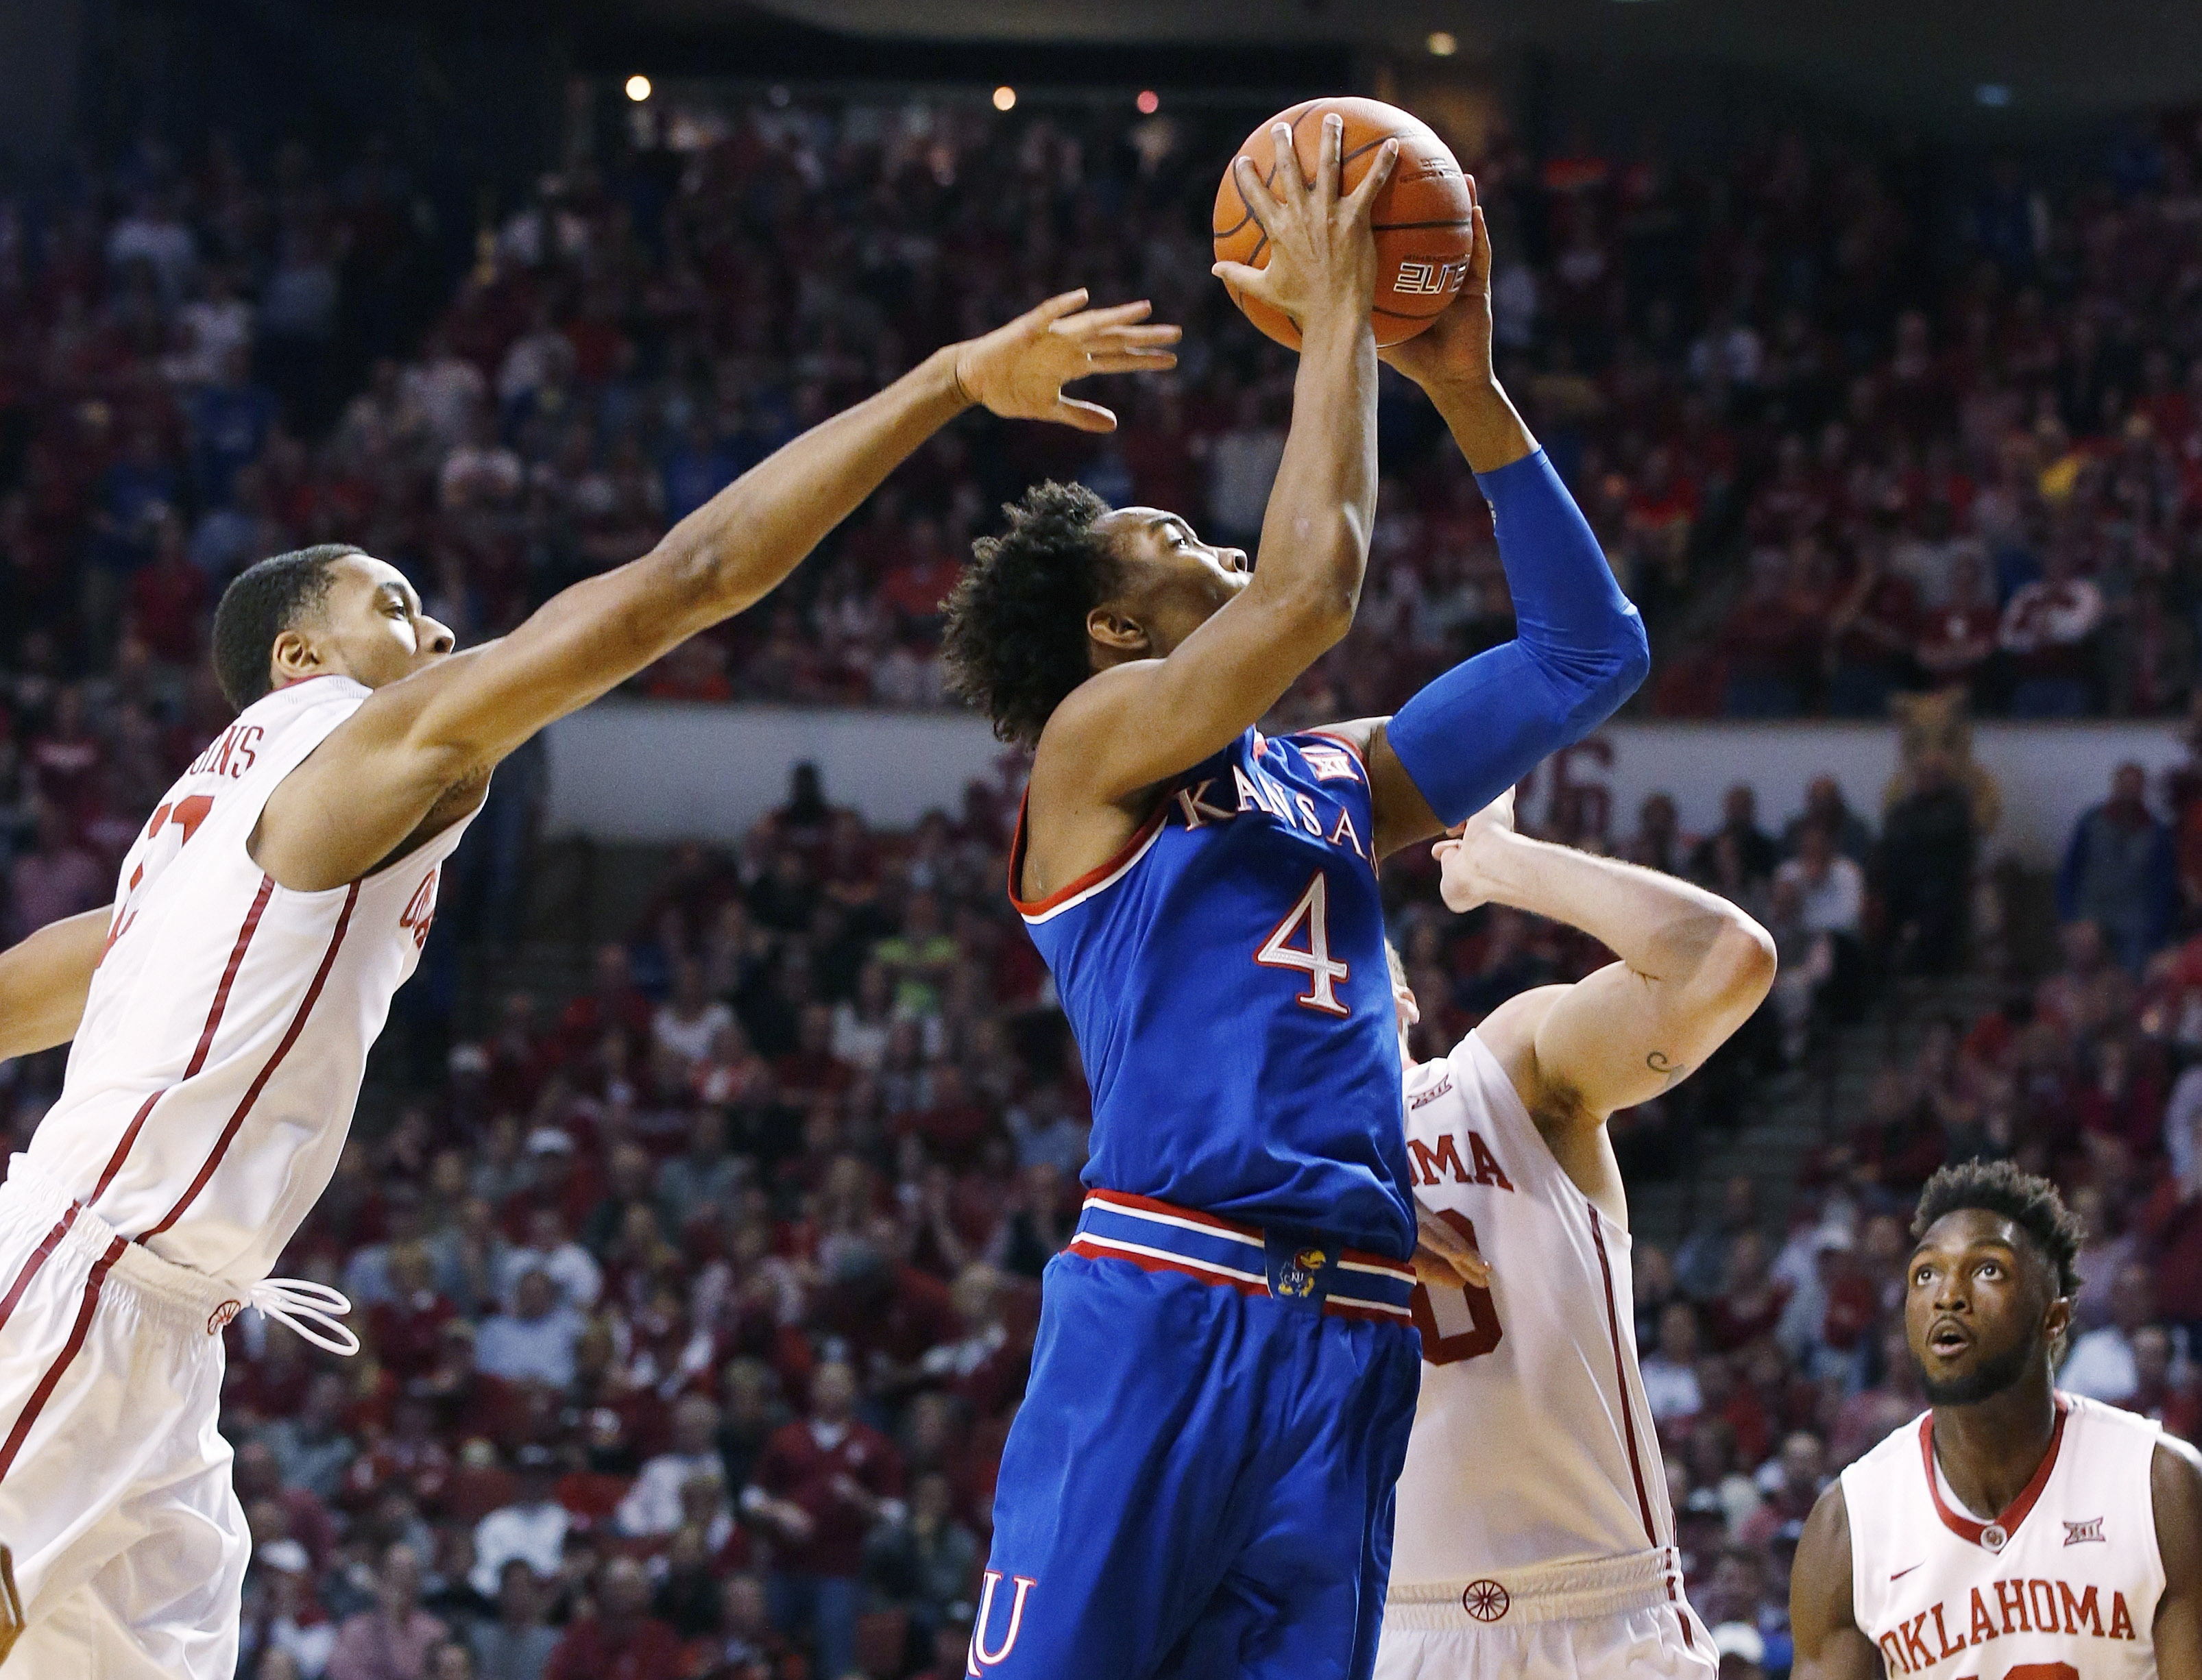 Kansas guard Devonte' Graham (4) shoots between Oklahoma guard Isaiah Cousins, left, forward Ryan Spangler, center, and forward Khadeem Lattin, right, in the first half of an NCAA college basketball game in Norman, Okla., Saturday, Feb. 13, 2016. (AP Photo/Sue Ogrocki)